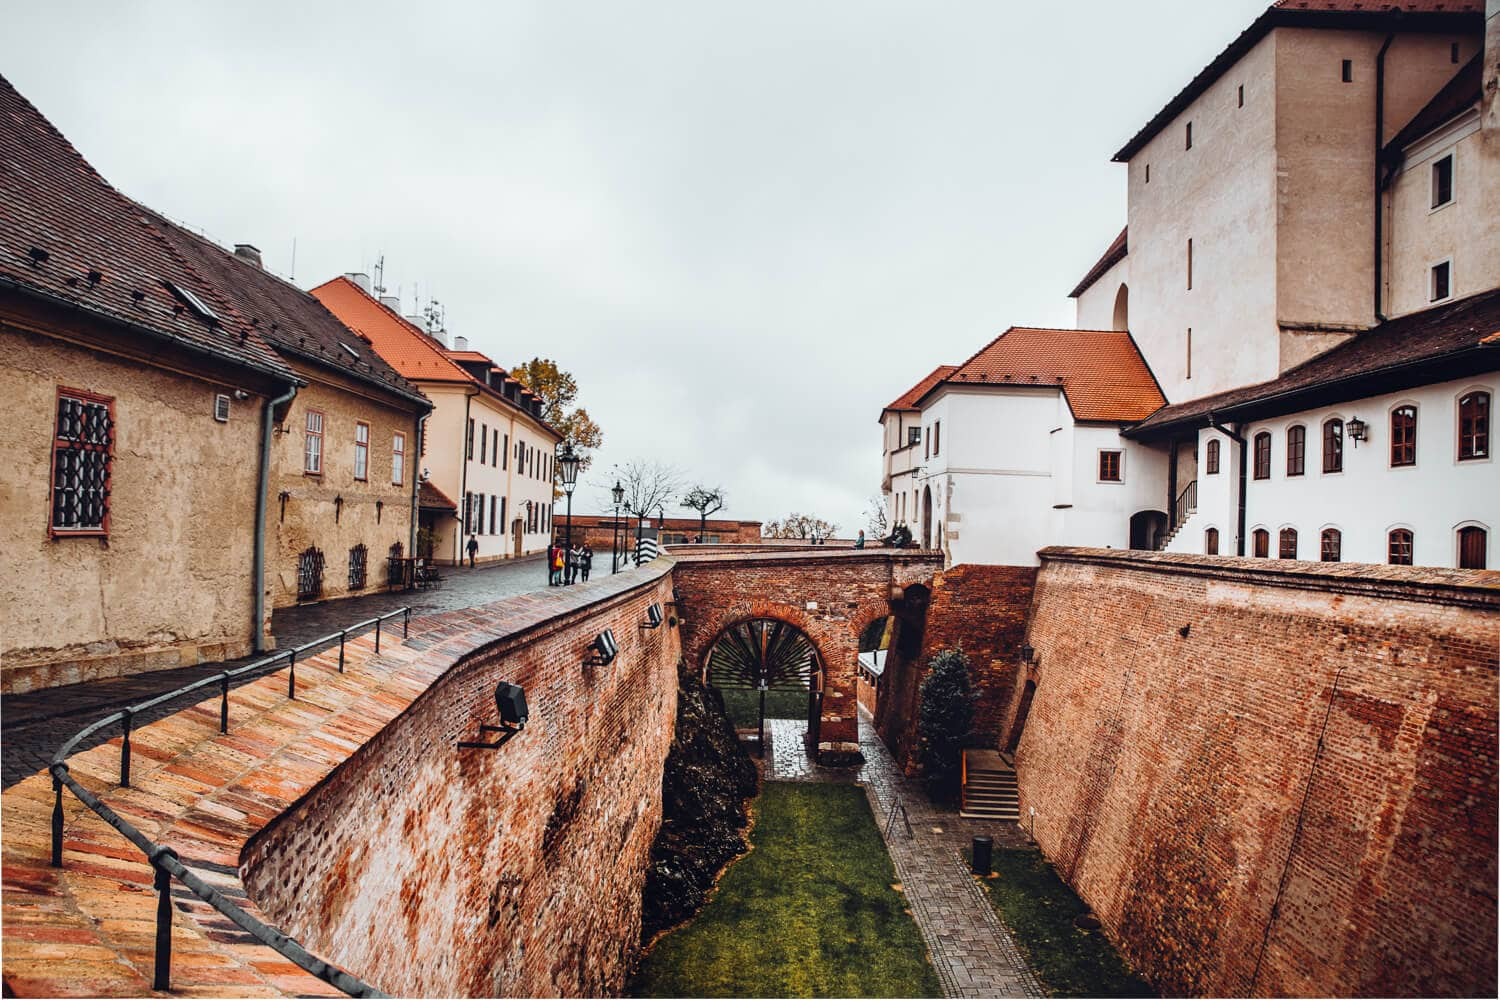 From crypts to nuclear fallout shelters, a labyrinth under the vegetable market and lots of beer and wine, keep reading to discover the top 10 things to do in Brno, Czech Republic